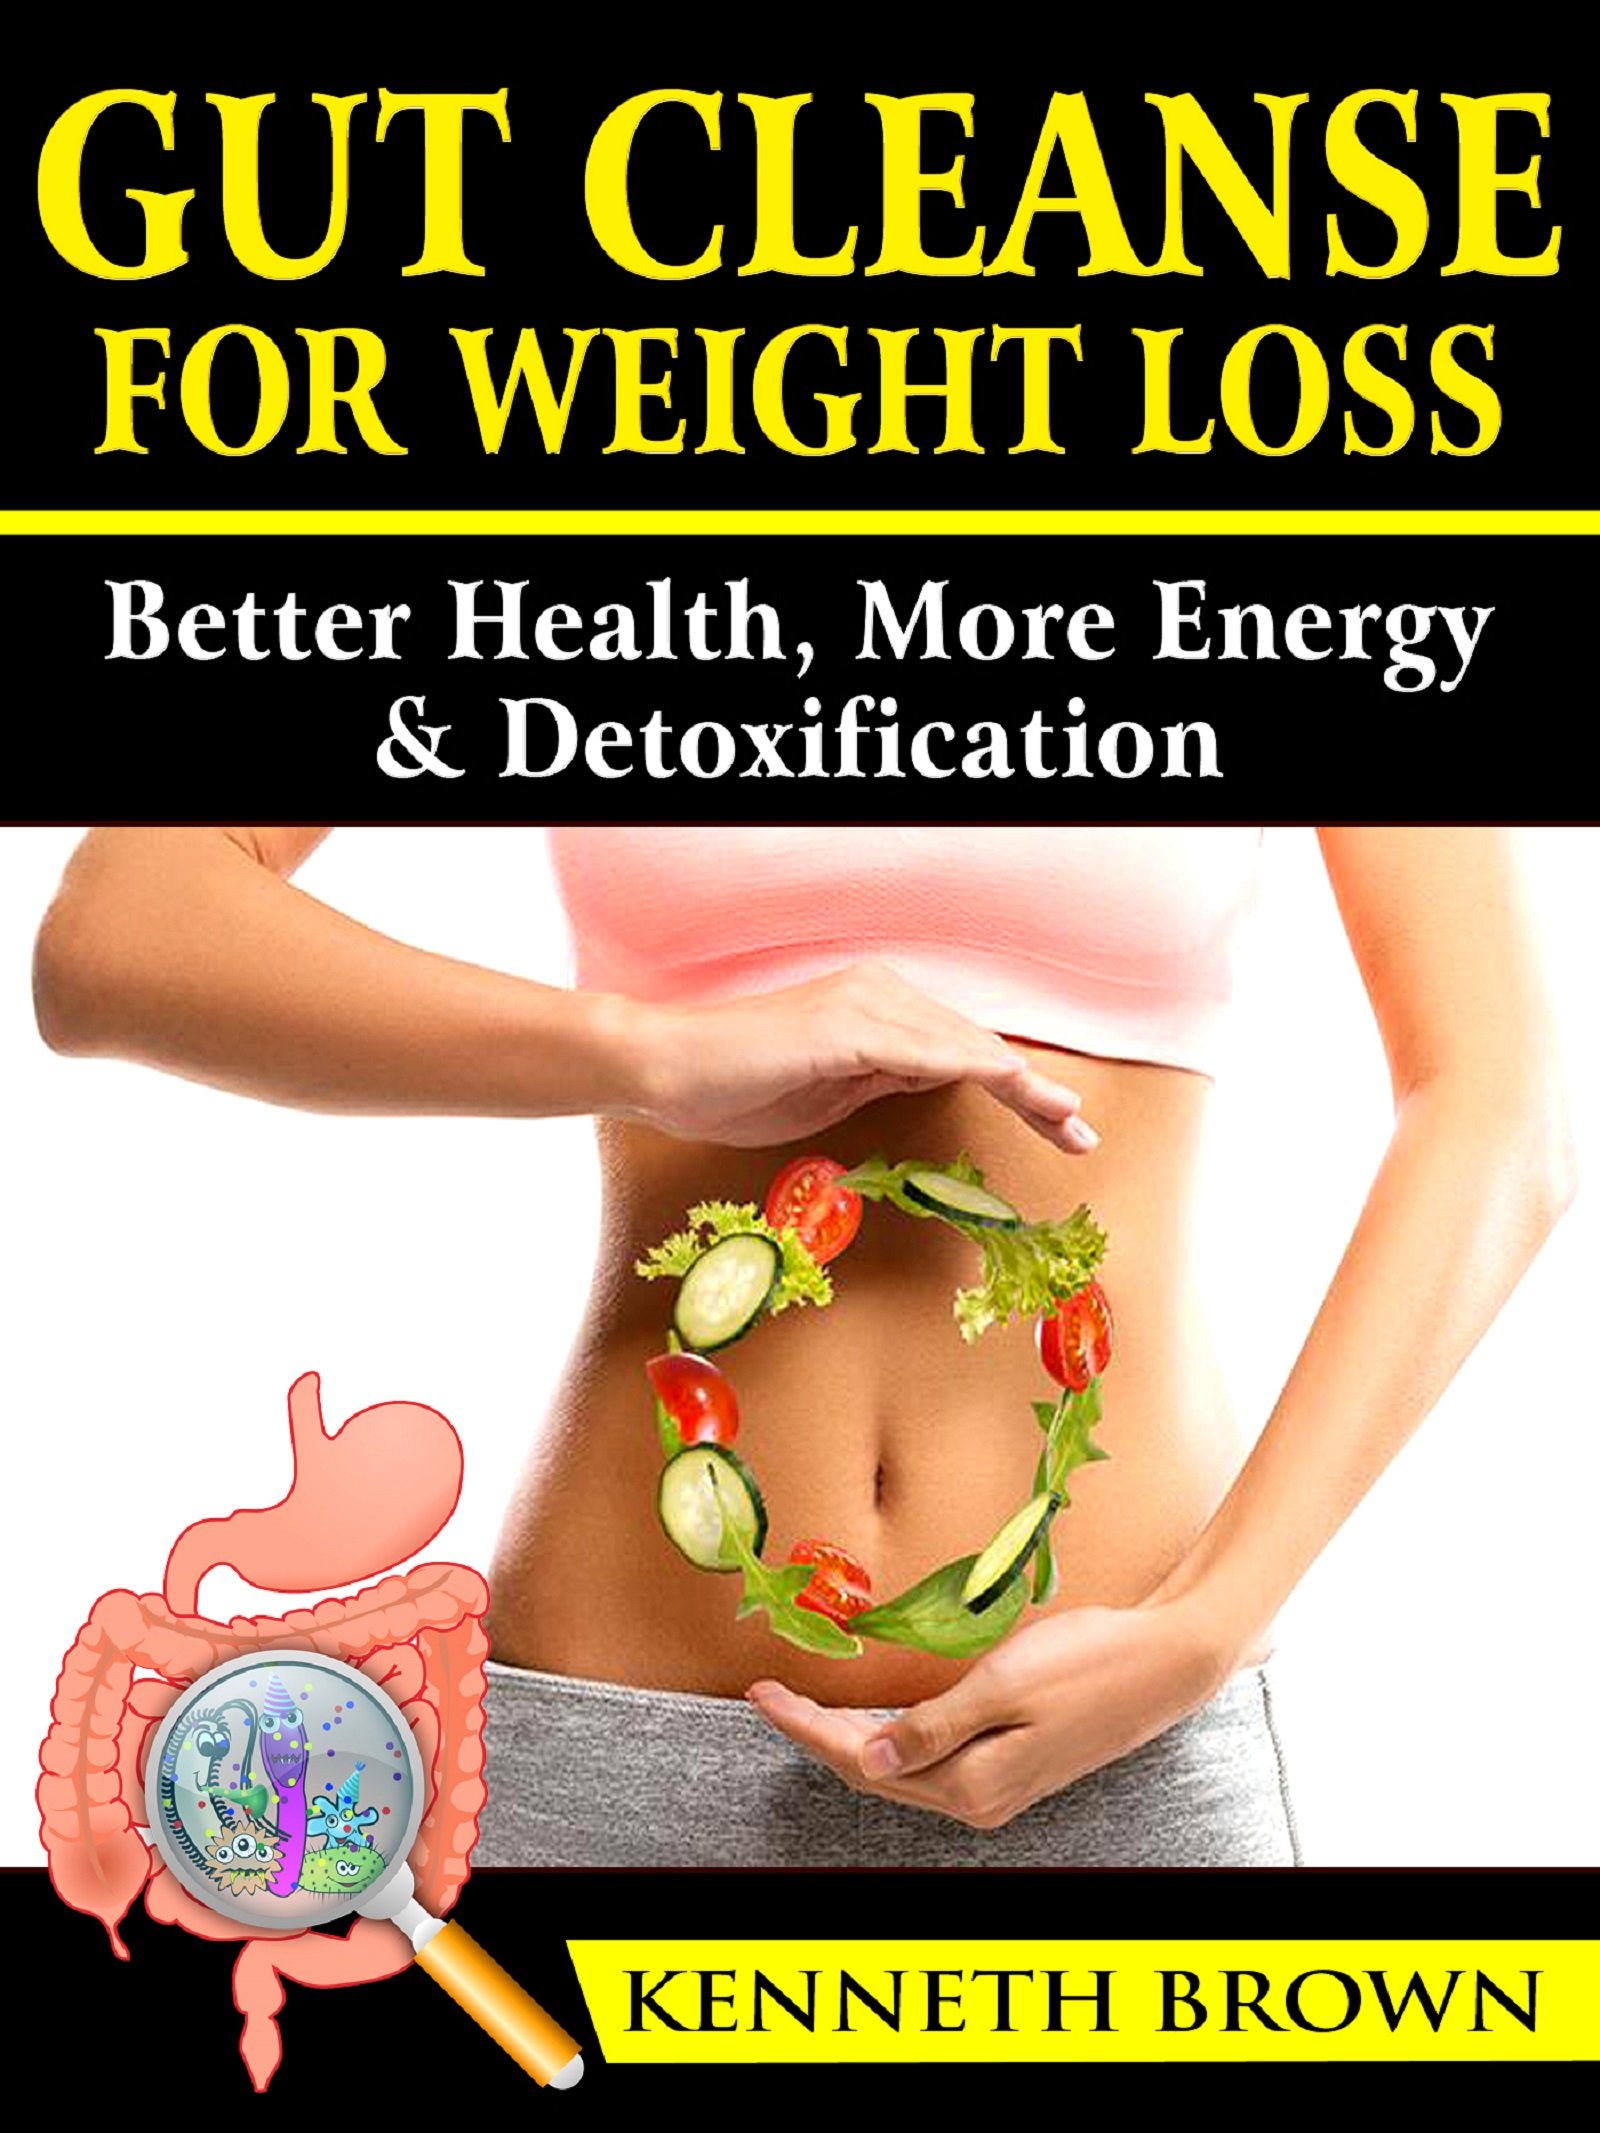 Gut cleanse for weight loss: better health, more energy, & detoxification